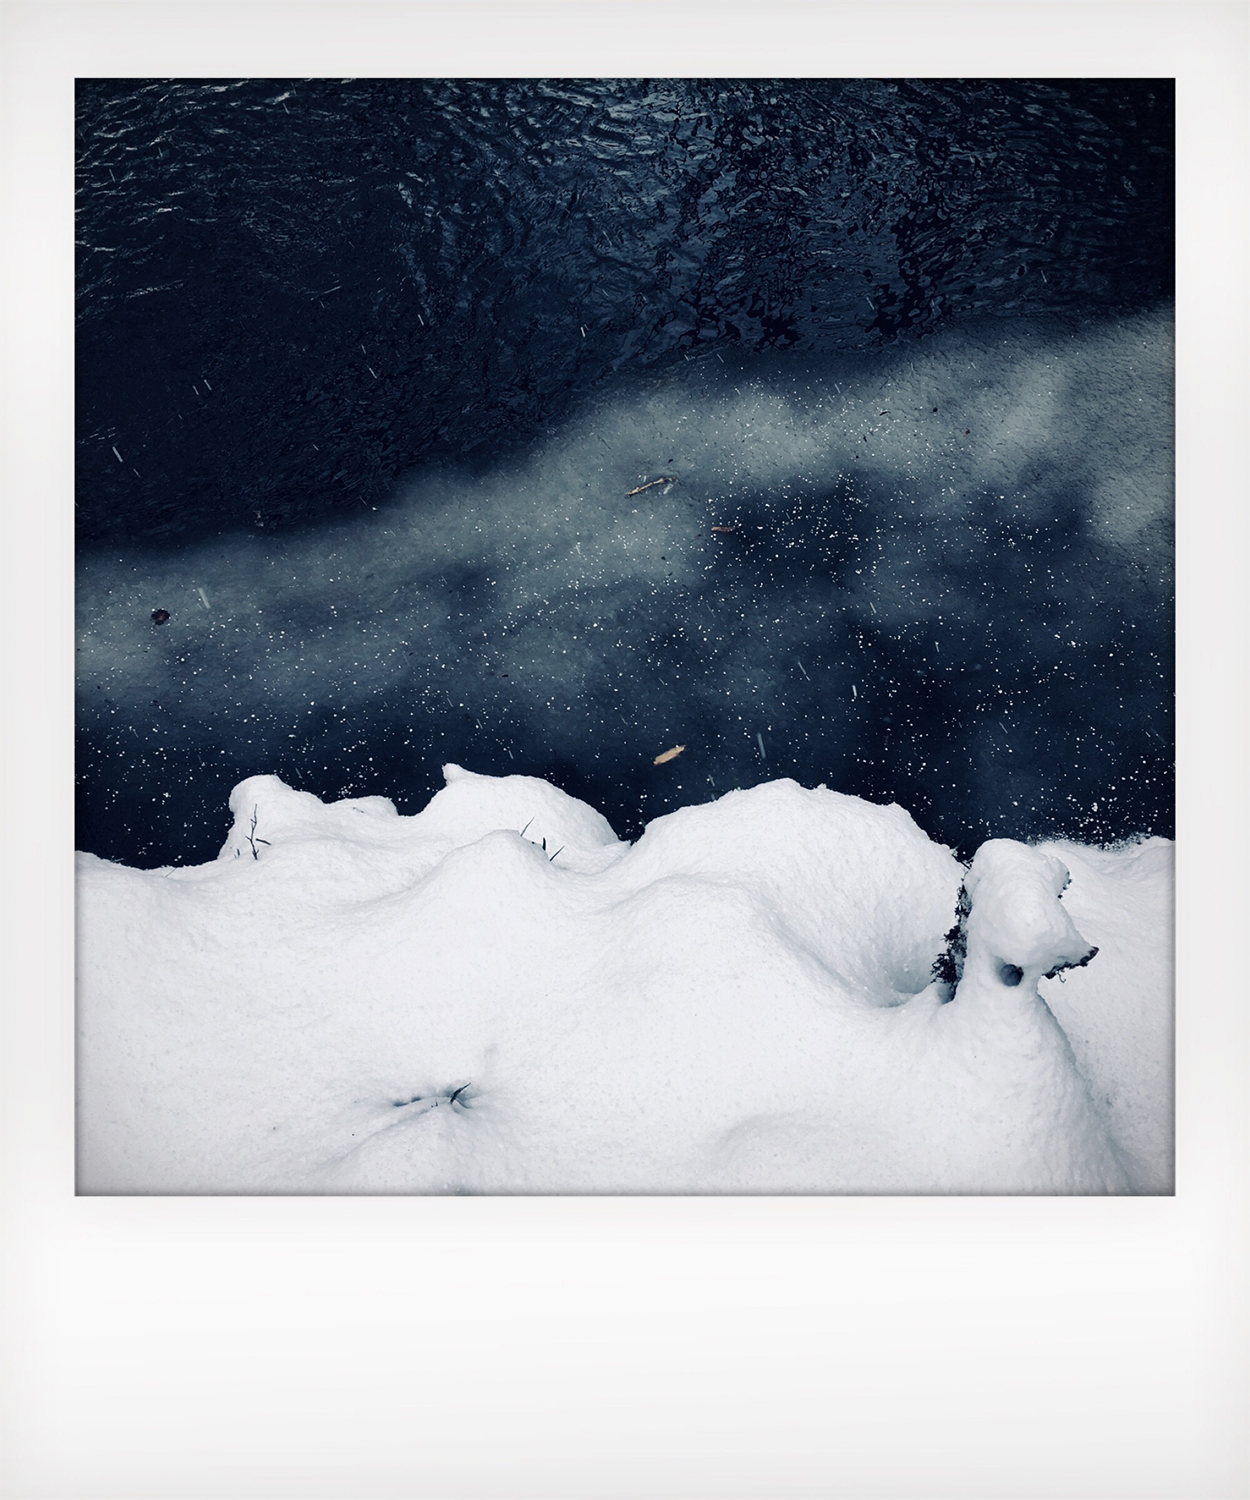 Polaroids from the North York Moors, UK.